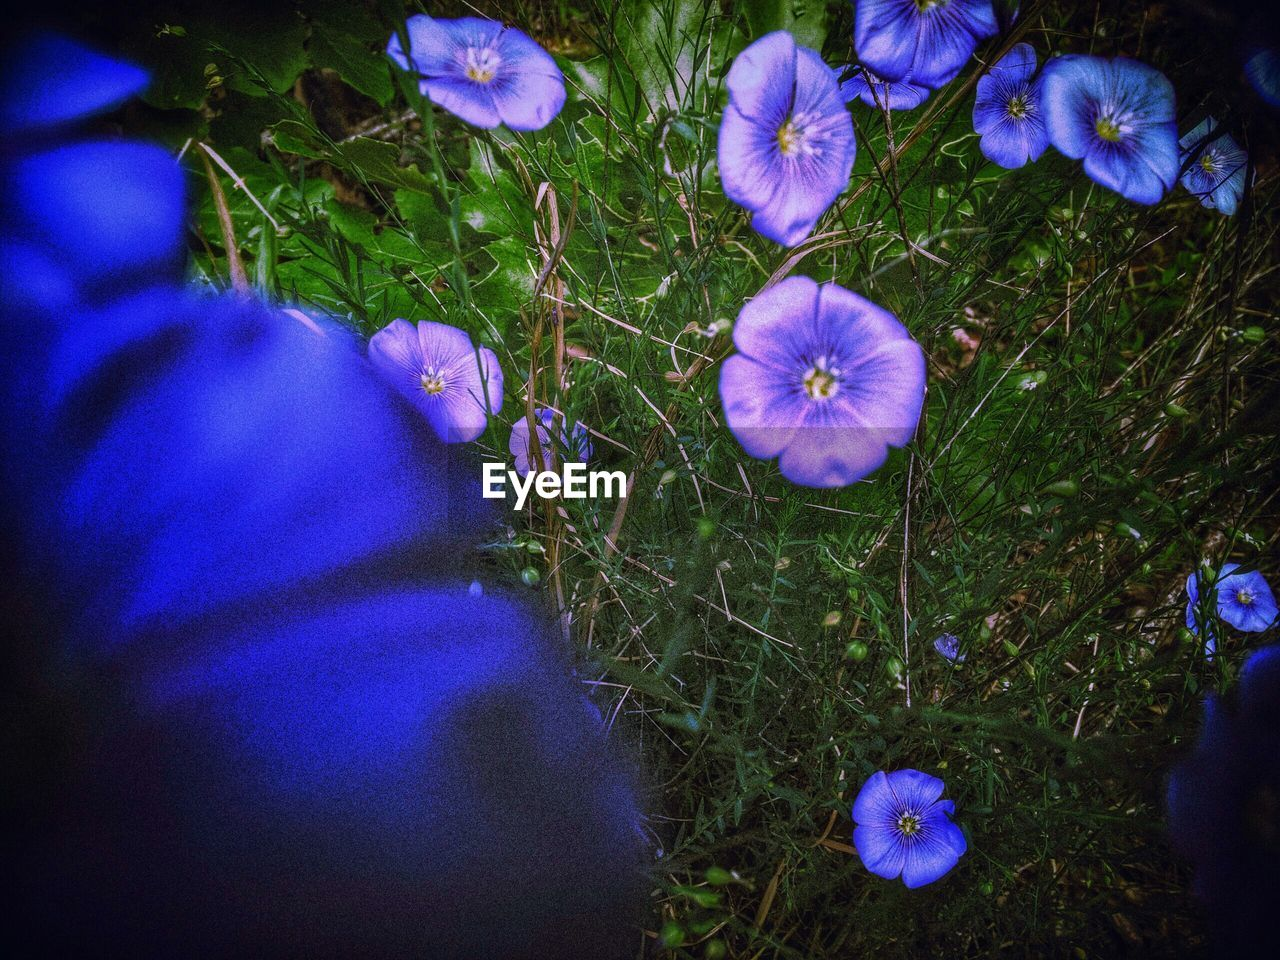 flower, growth, petal, fragility, nature, purple, grass, high angle view, real people, beauty in nature, freshness, flower head, blue, field, plant, one person, outdoors, low section, day, blooming, close-up, crocus, people